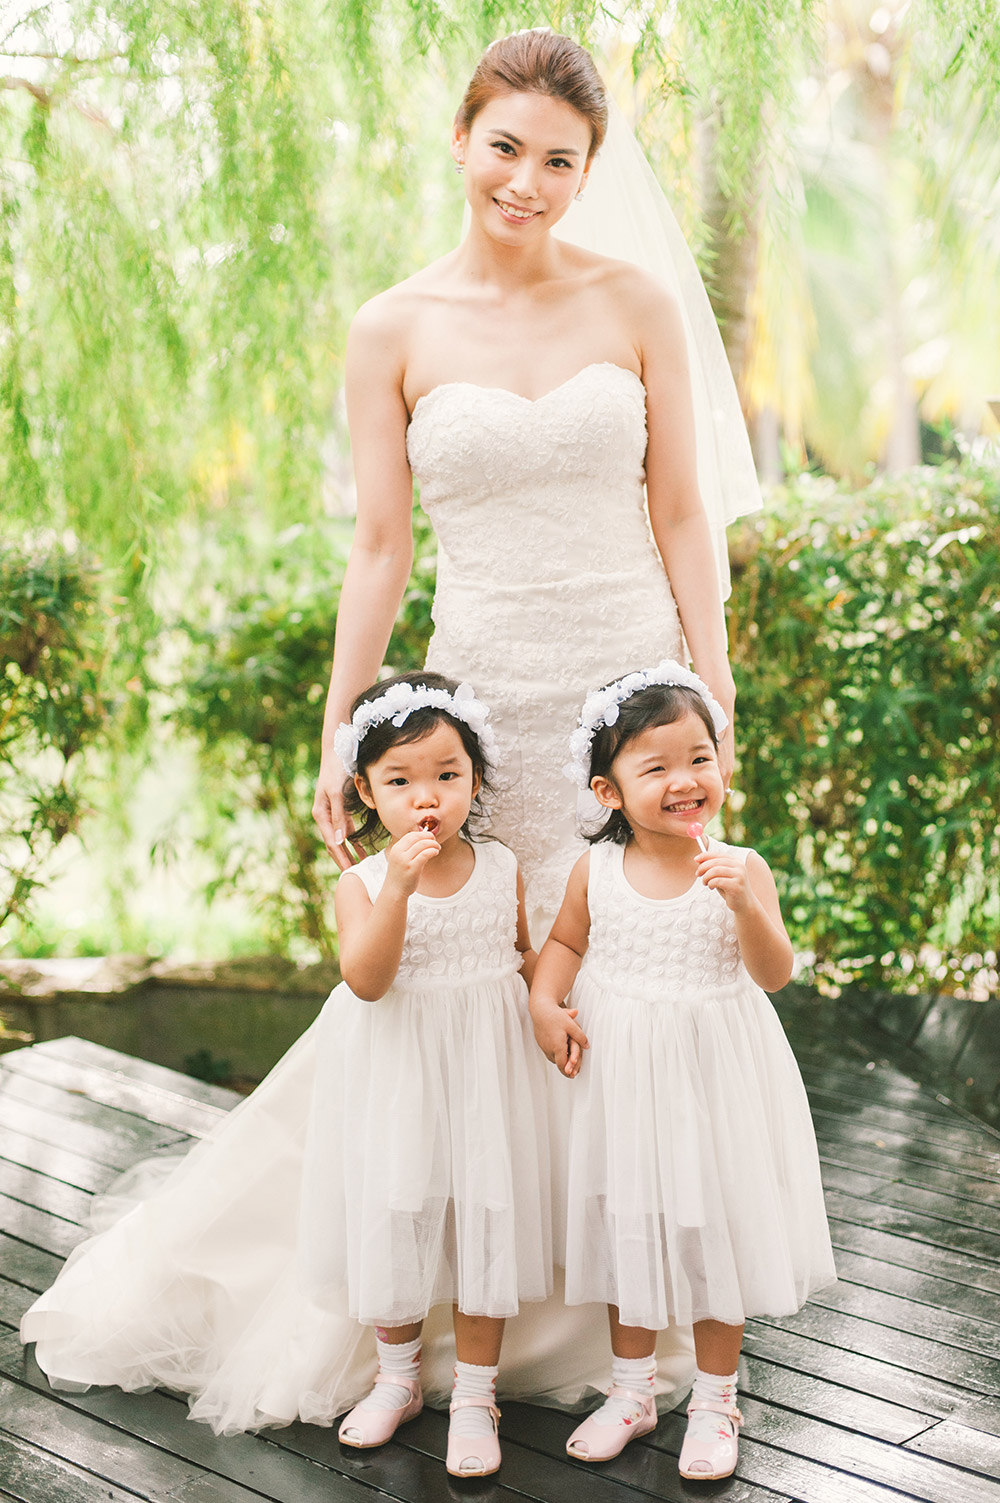 Flowergirls. Munkeat Photography. www.theweddingnotebook.com